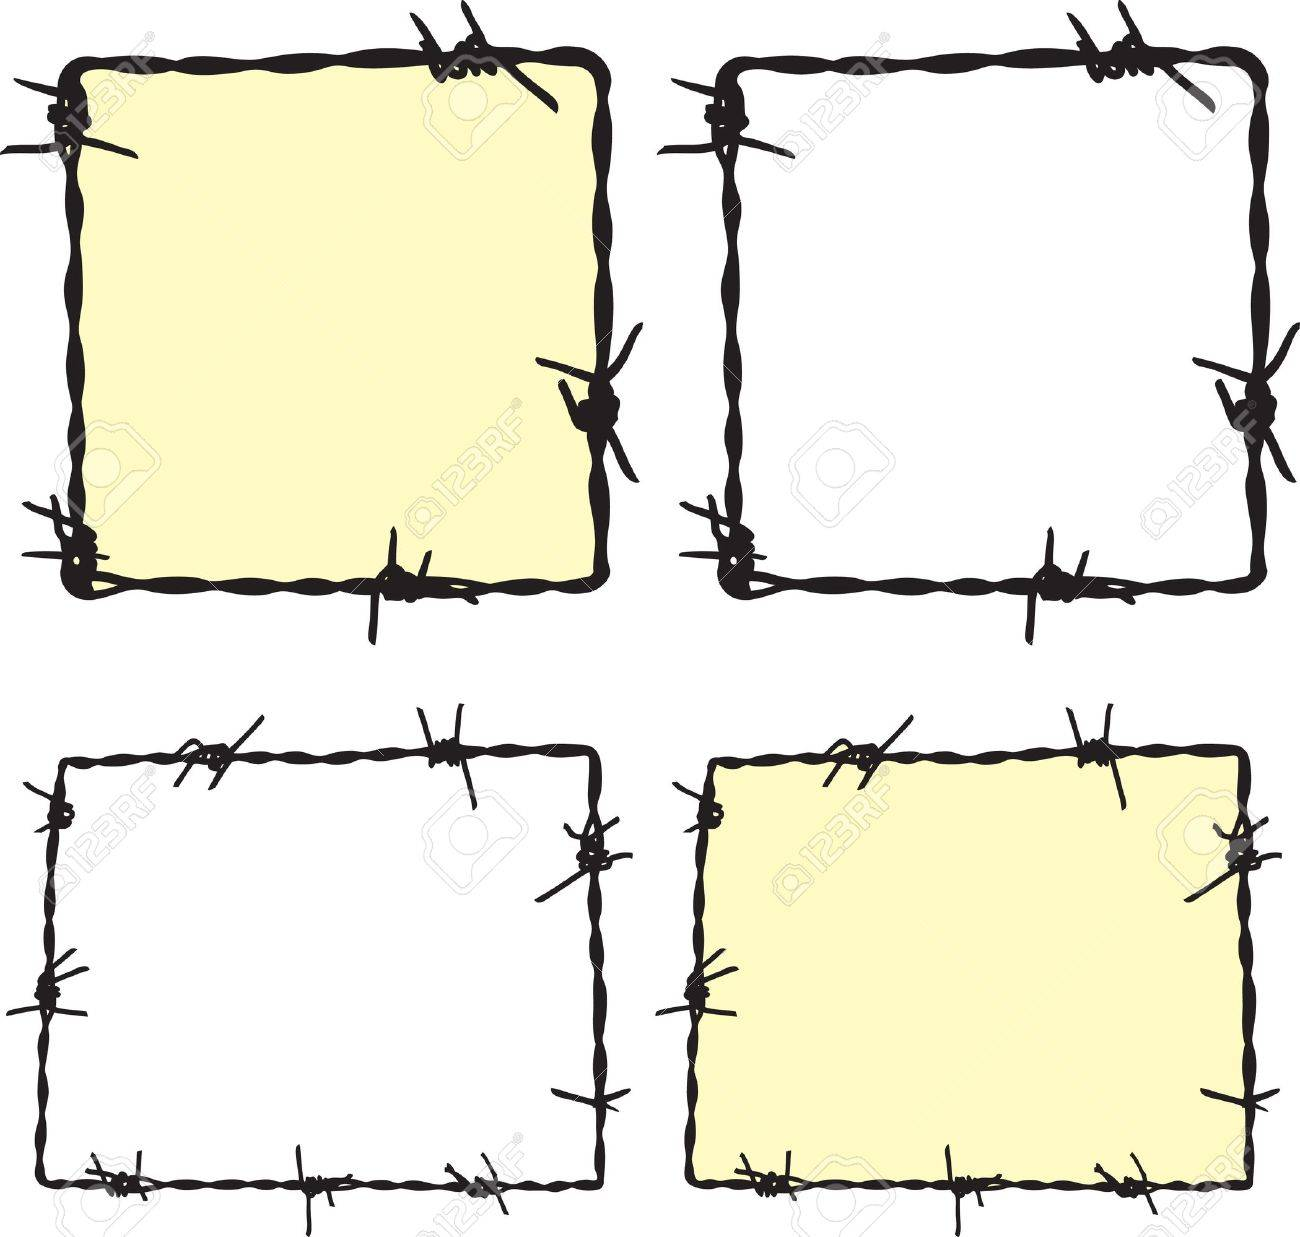 Barbwire frame Stock Vector - 7930997